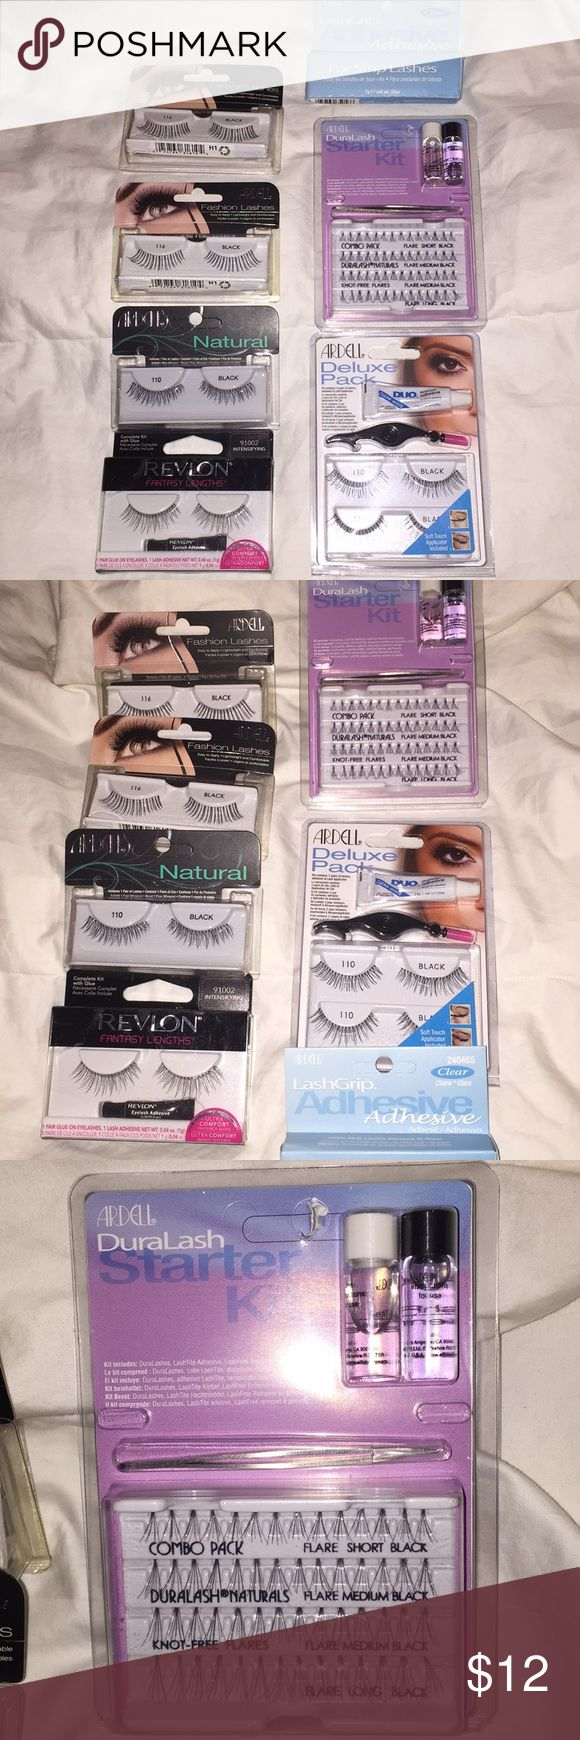 Fashion Lashes and Starter Eyelash Kits I give up on False Eyelashes so all this can be yours for cheap! In all you get 6 pair of lashes, adhesive, lash applicator, and a starter kit with individual lashes. In this bunch 7 items Ardell & Revlon Makeup False Eyelashes